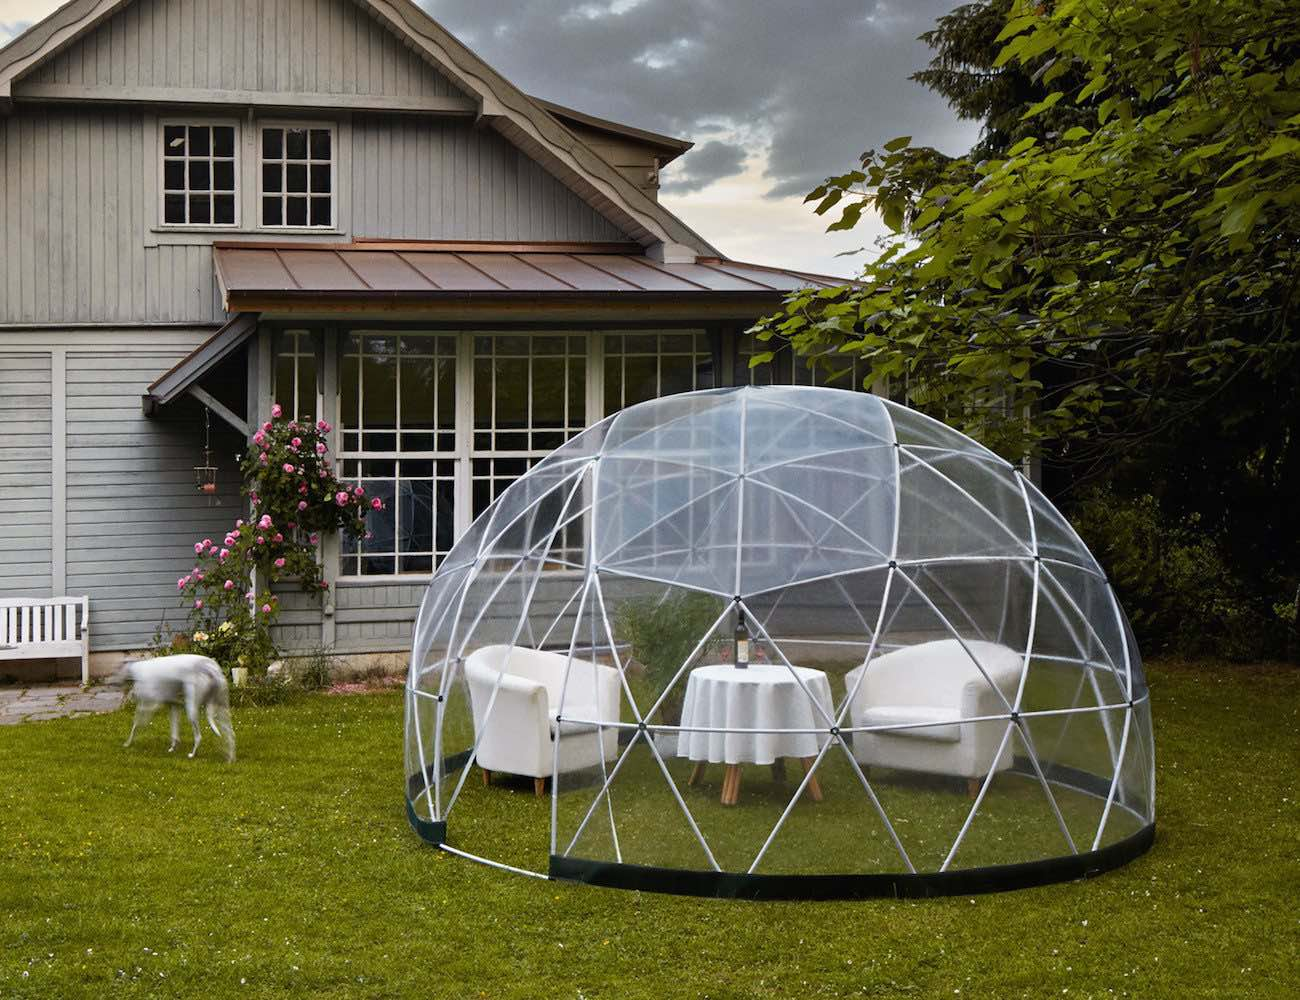 Garden Igloo Outdoor Living Space For Your Garden Review The